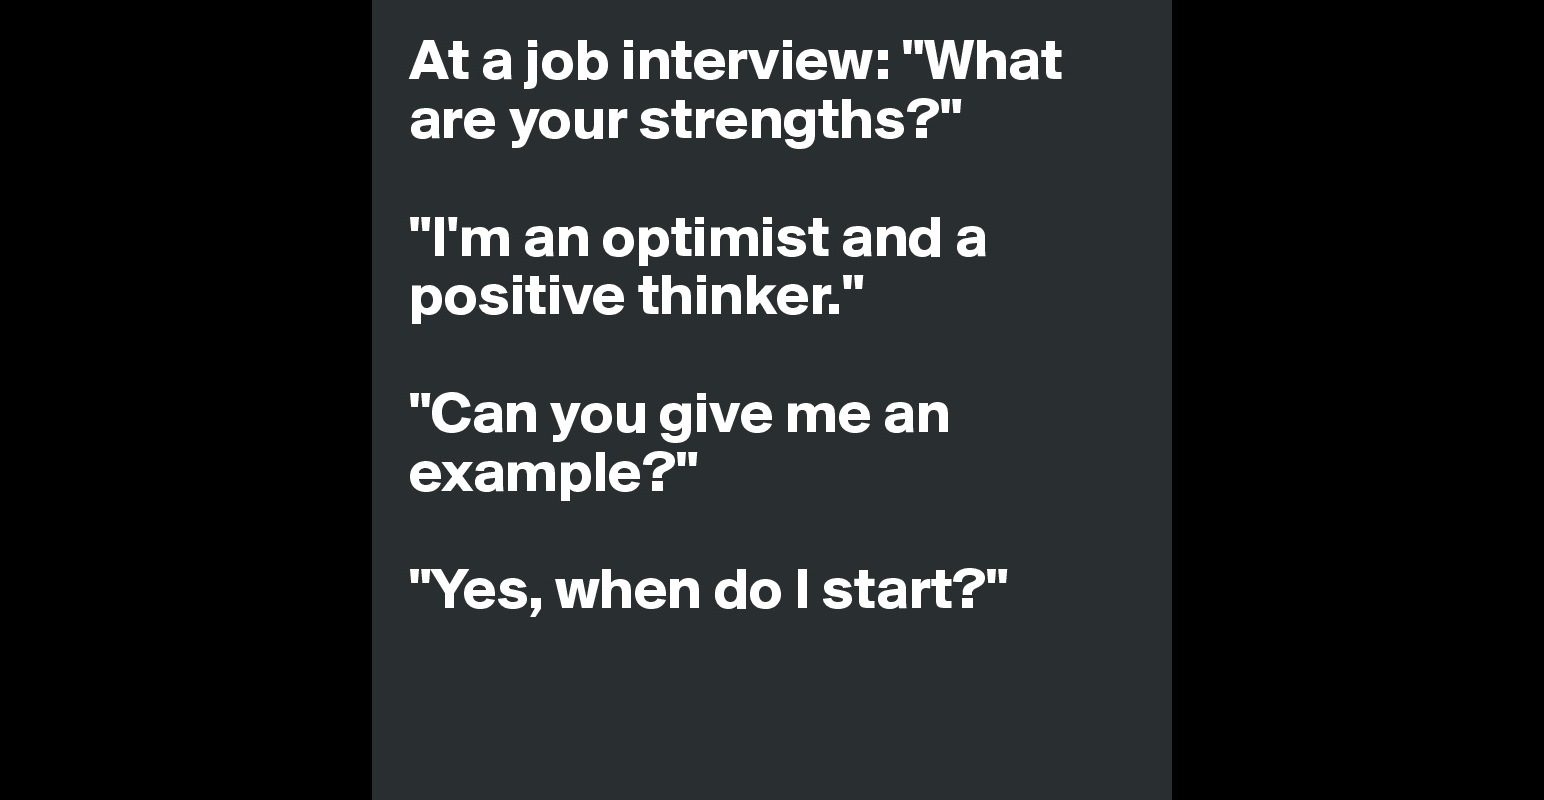 at a job interview what are your strengths i m an optimist at a job interview what are your strengths i m an optimist and a positive thinker can you give me an example yes when do i start